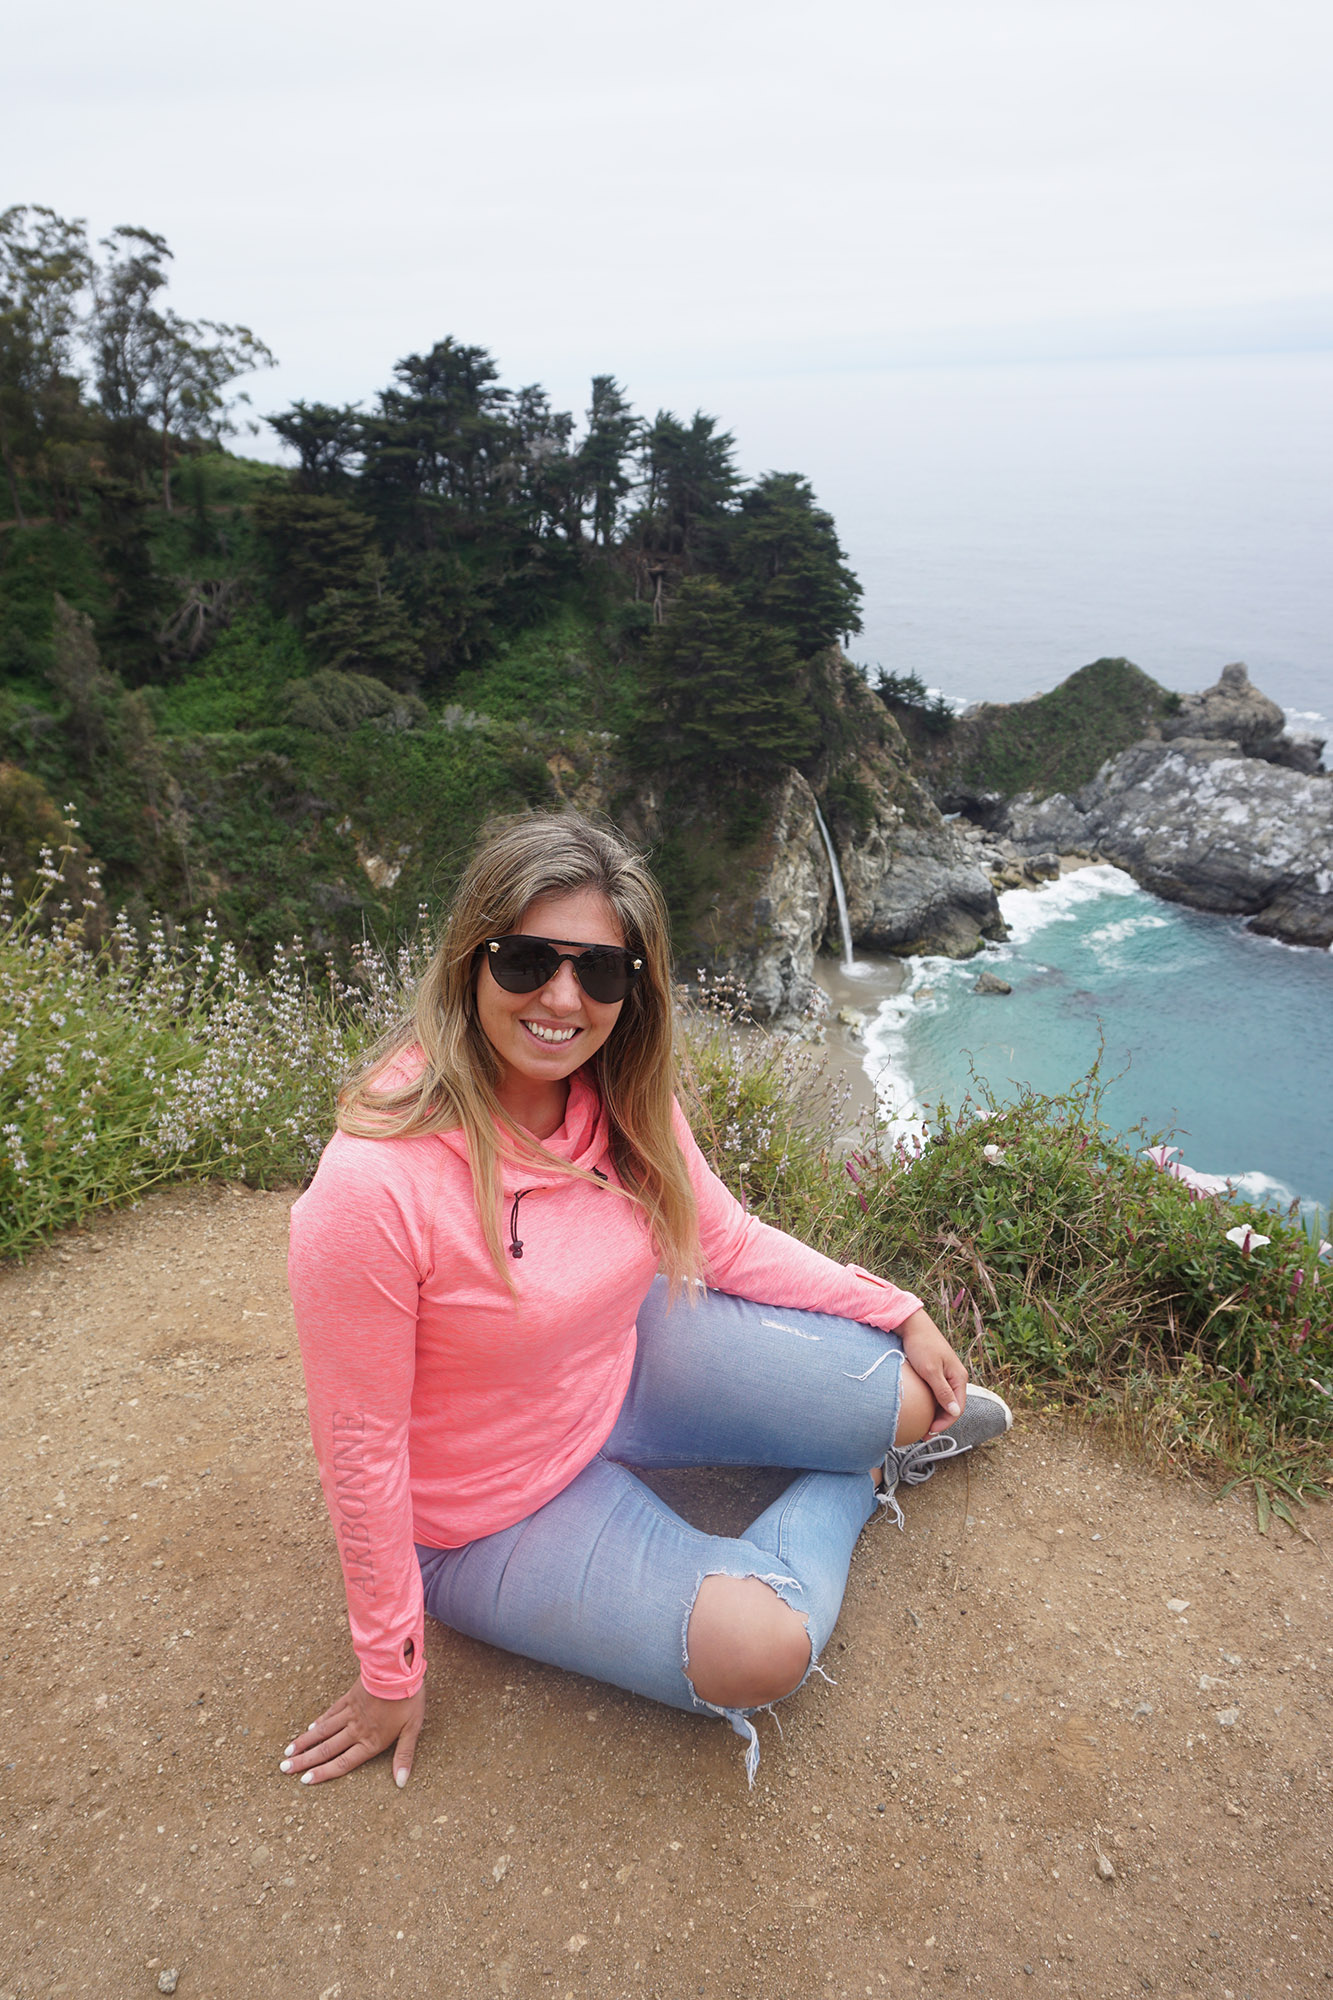 Posing with McWay Falls in the background